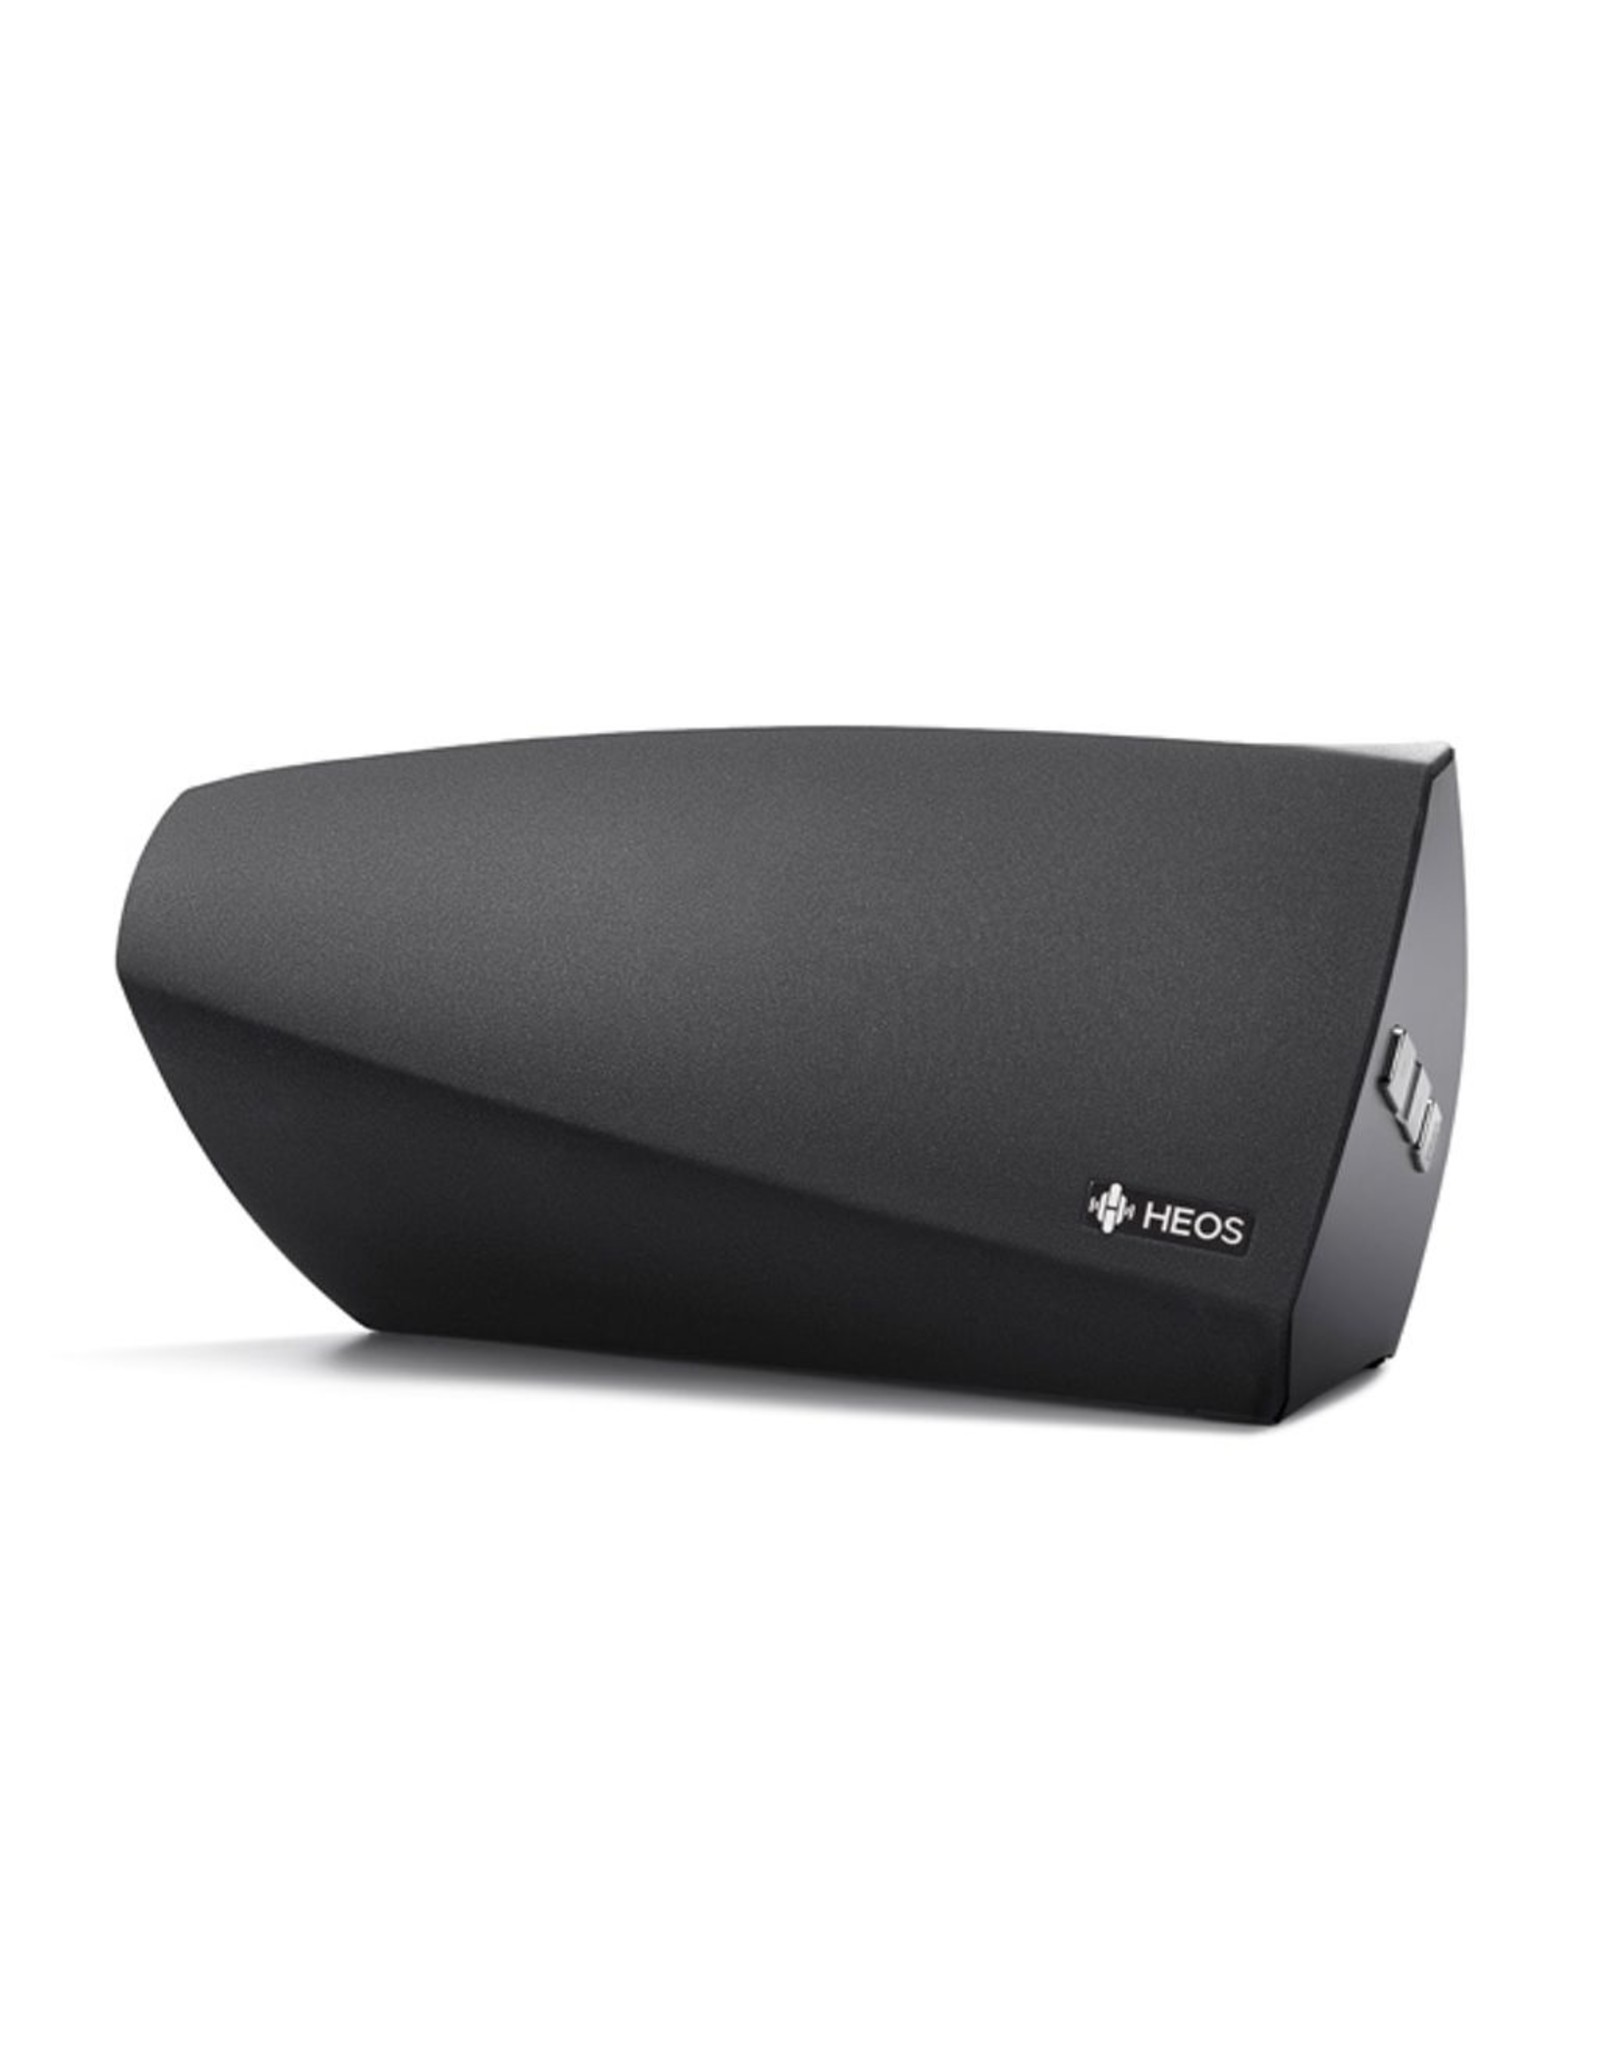 HEOS HEOS 3 HS2 WIRELESS SPEAKER